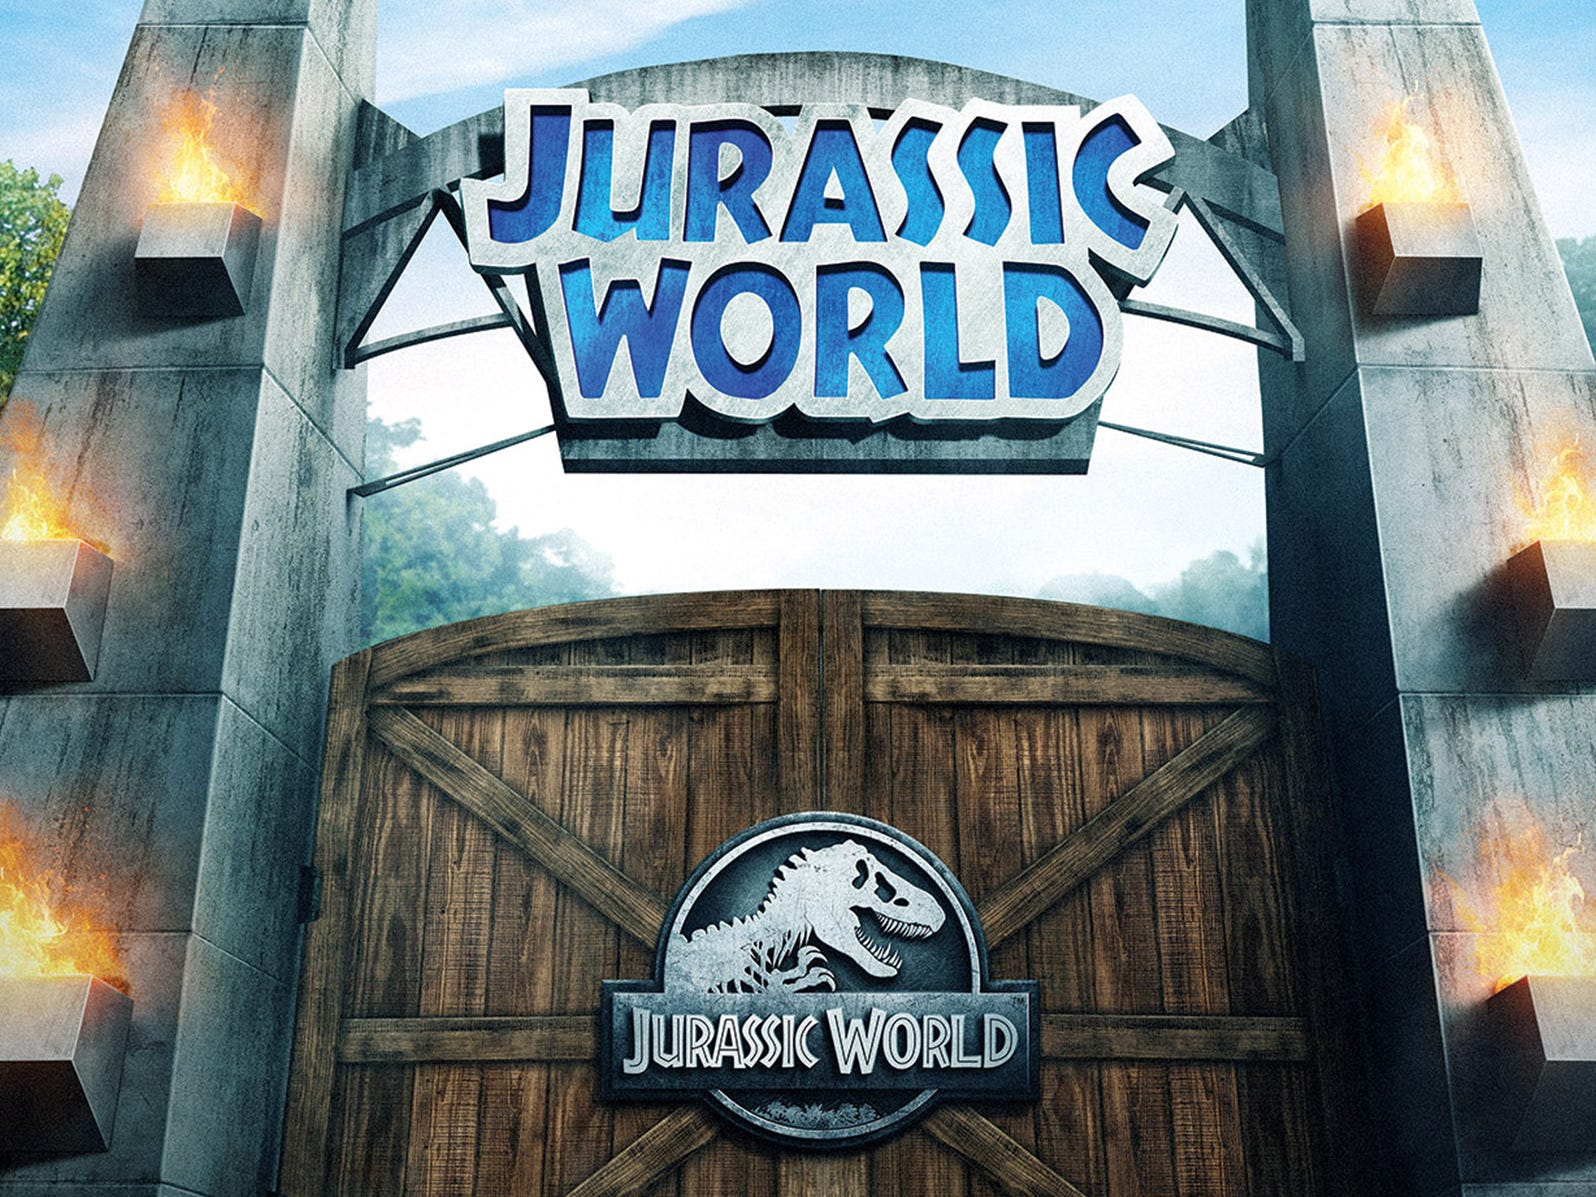 "The Jurassic Park ride has been terrorizing visitors with its fearsome dinosaurs and splashdown finale for years. With the ""Jurassic World"" reboot amassing T. rex-sized box office receipts, Universal Studios Hollywood is getting its water ride spiffed up for the next generation of genetically engineered, prehistoric creatures."